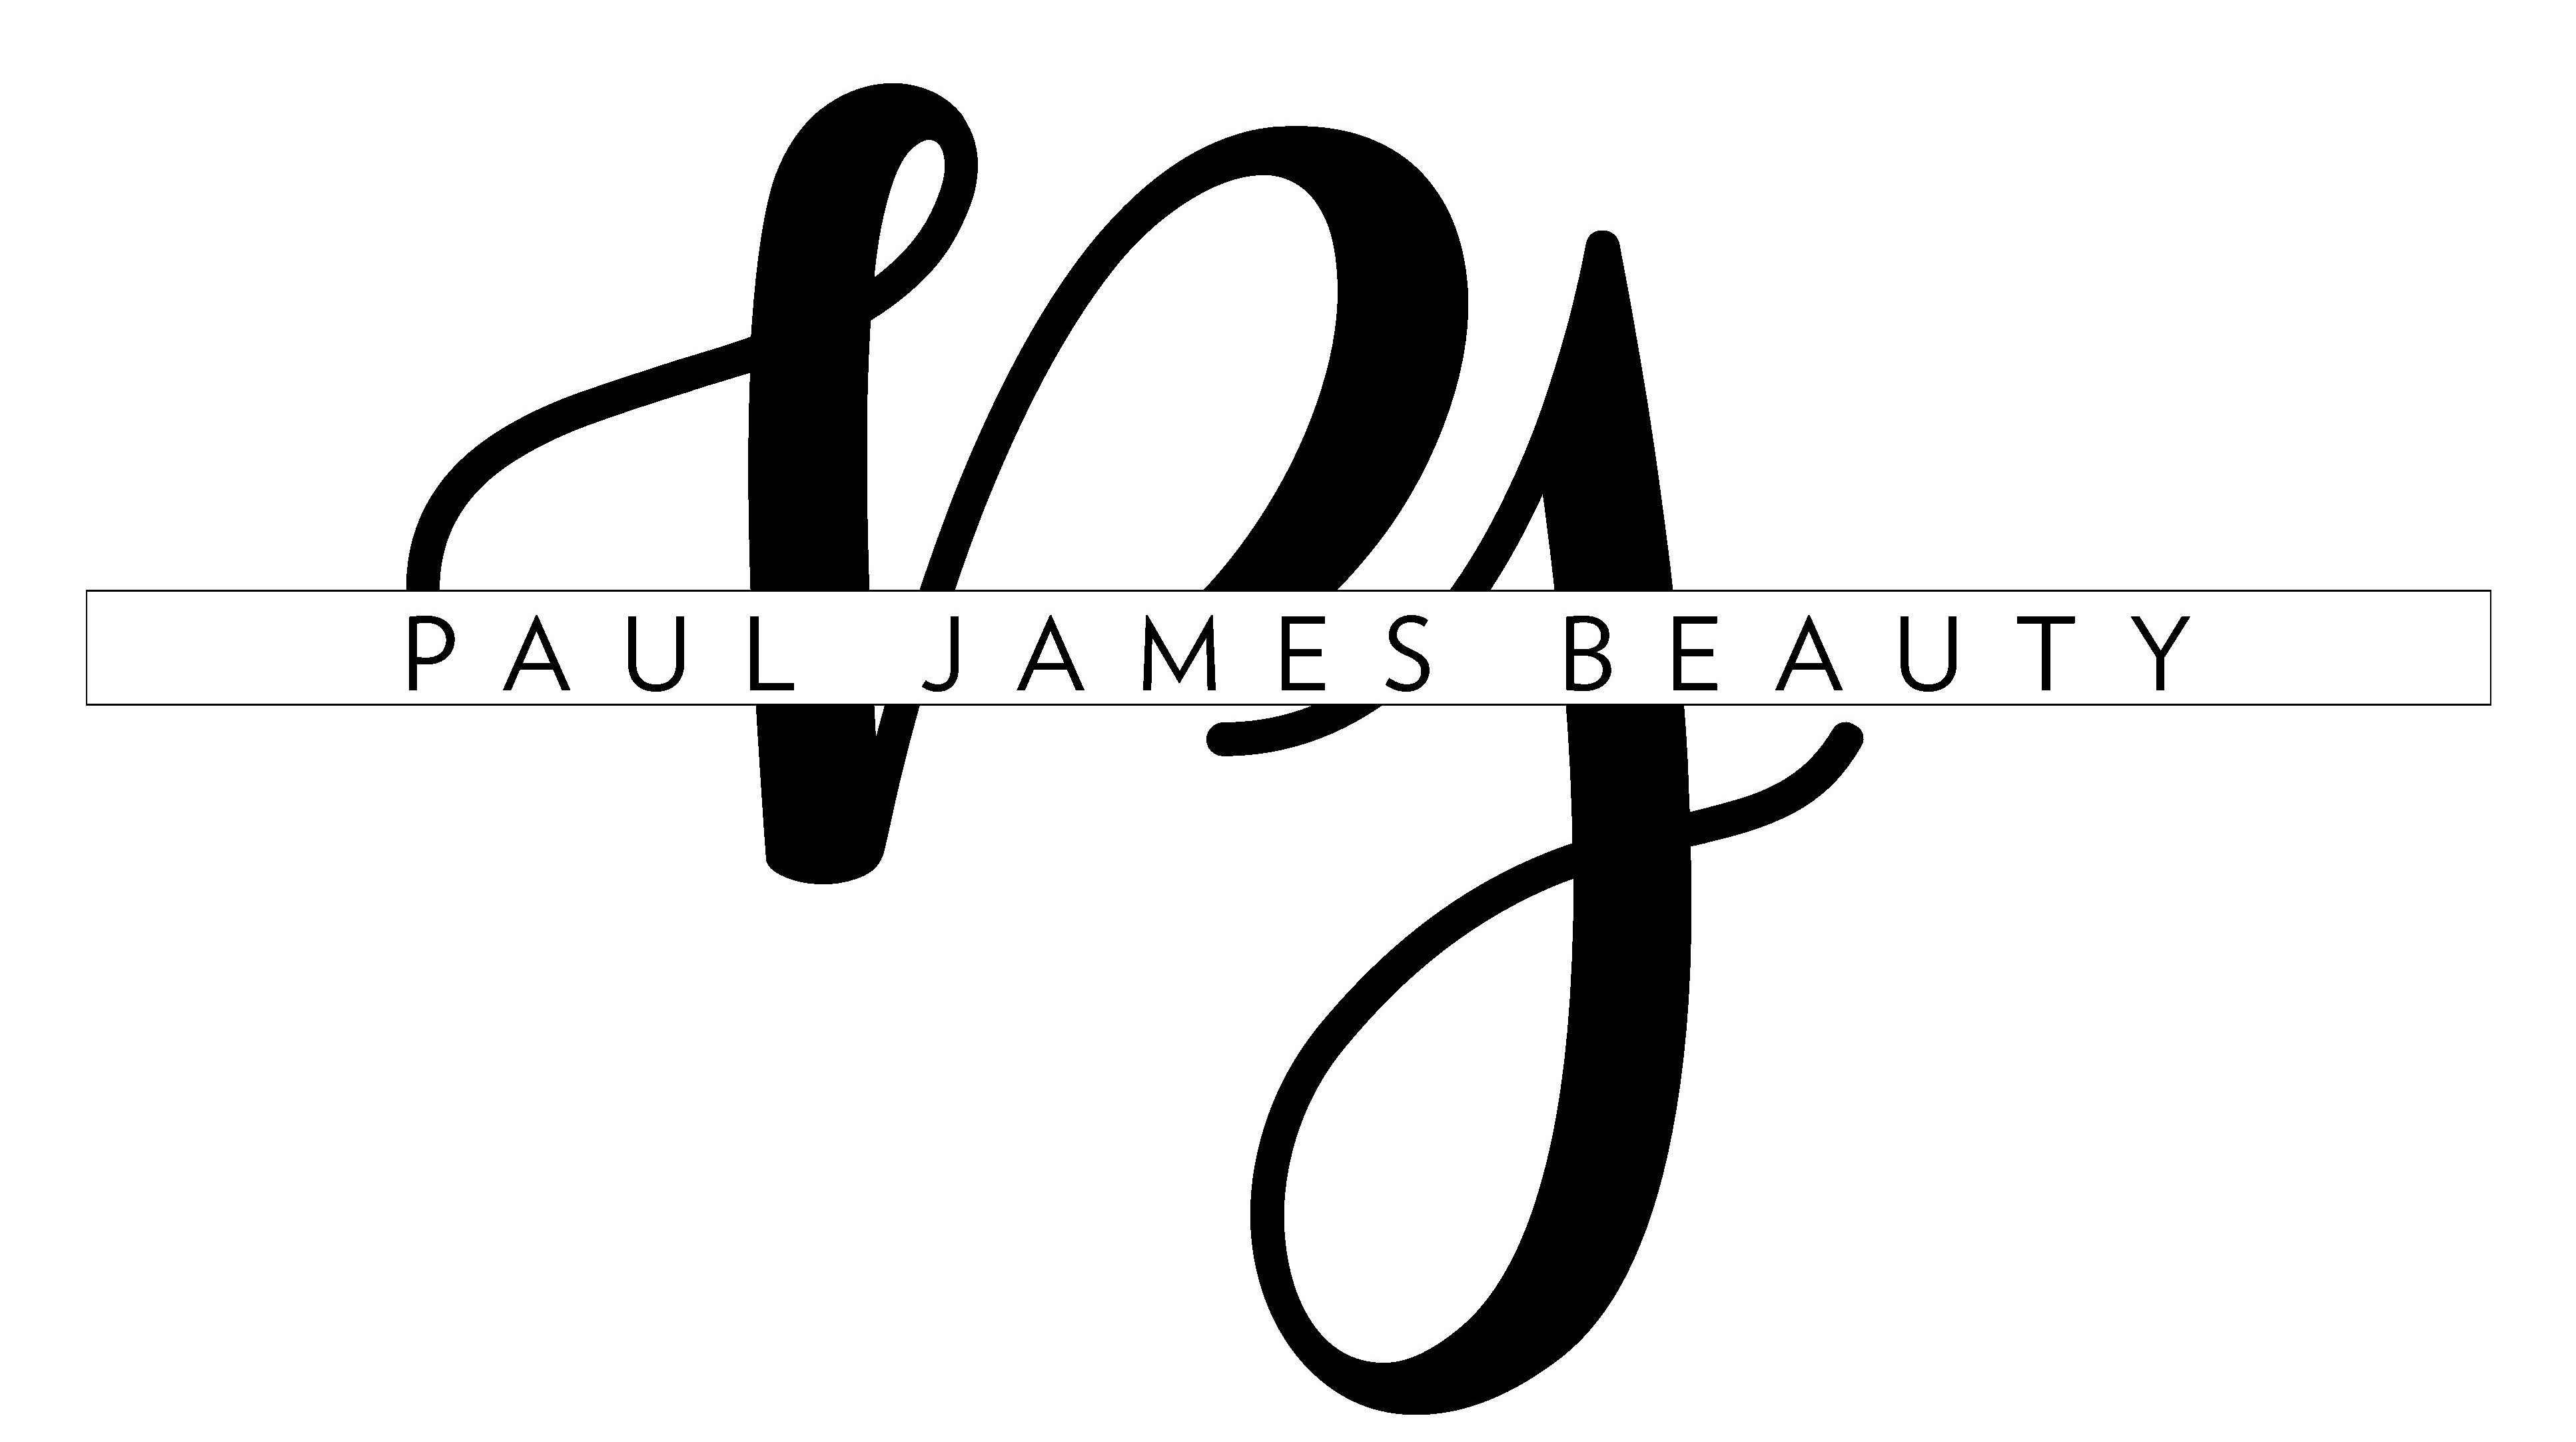 Paul James Beauty